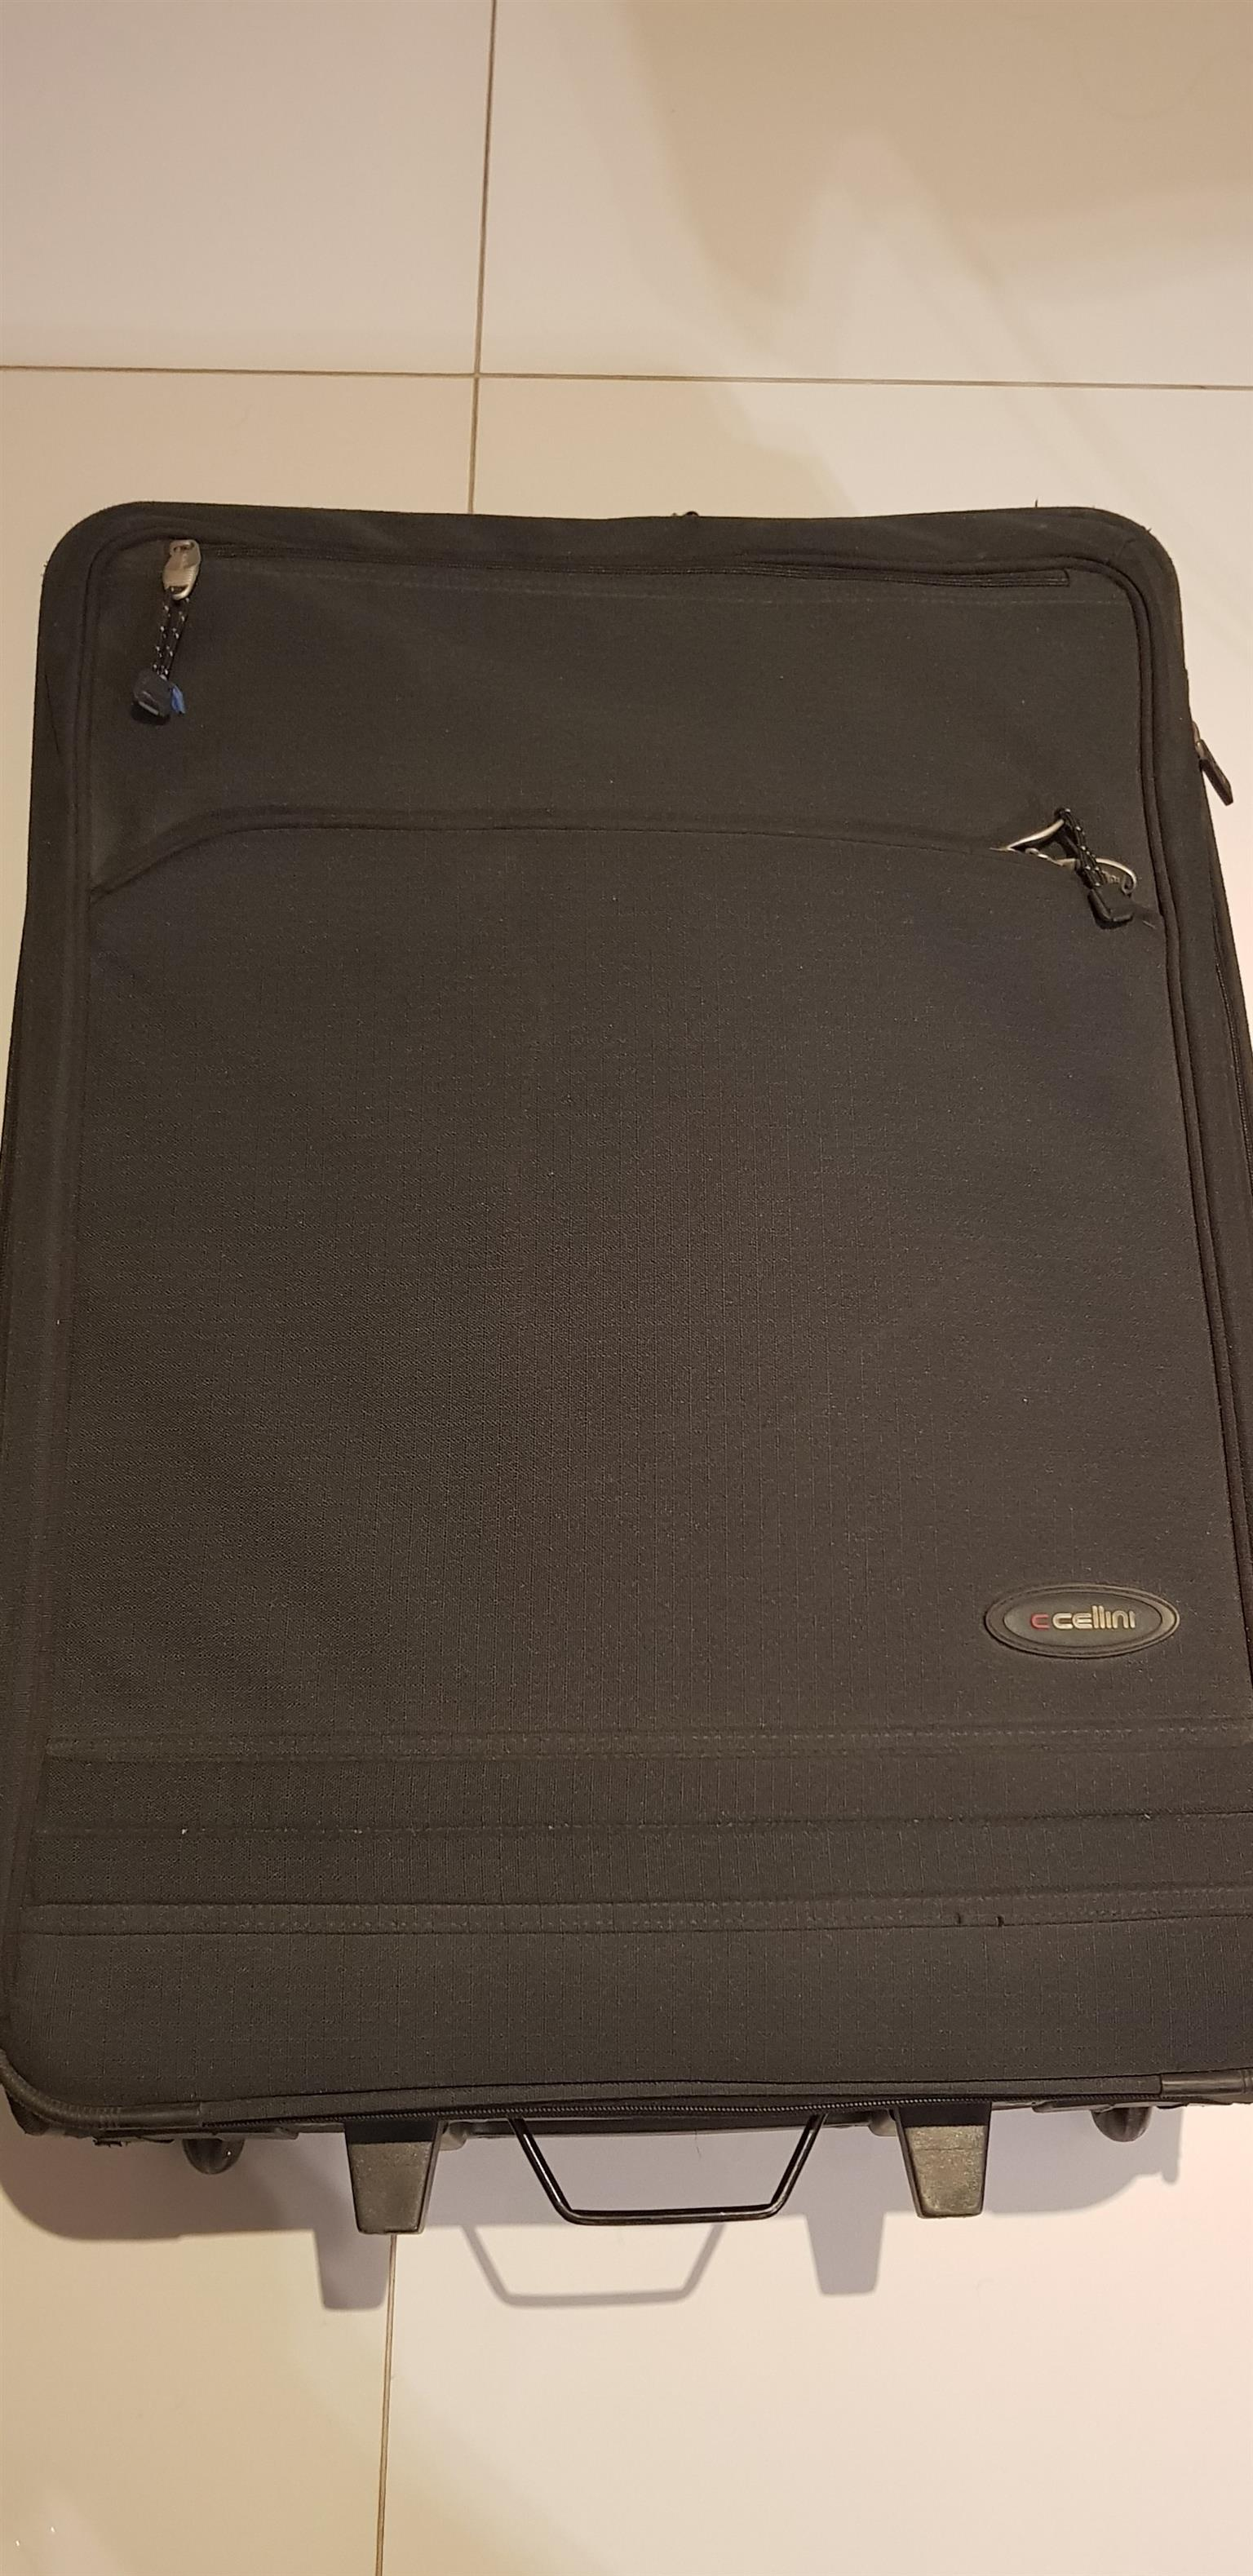 Cellini Microlite 74cm luggage bag for sale, excellent condition